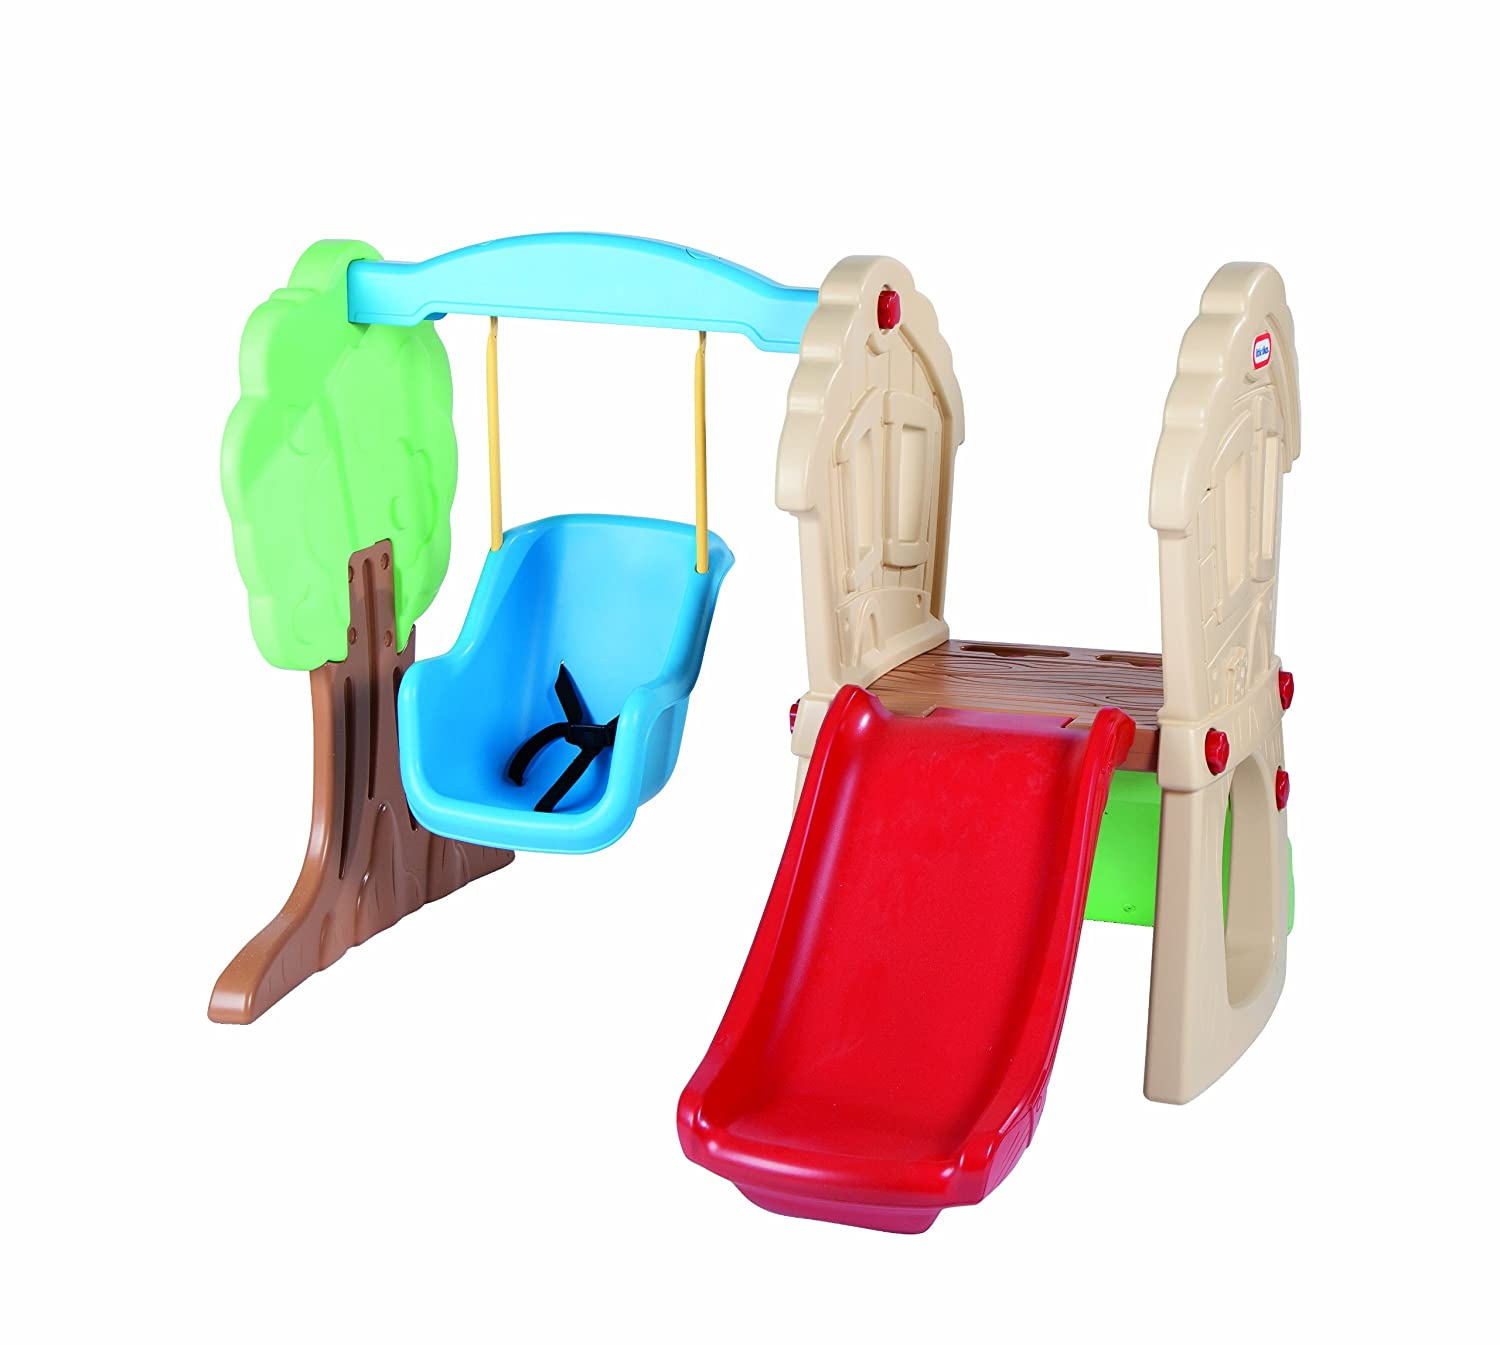 Best Small Swing Sets for Small Yards Reviews Top Kids Gear